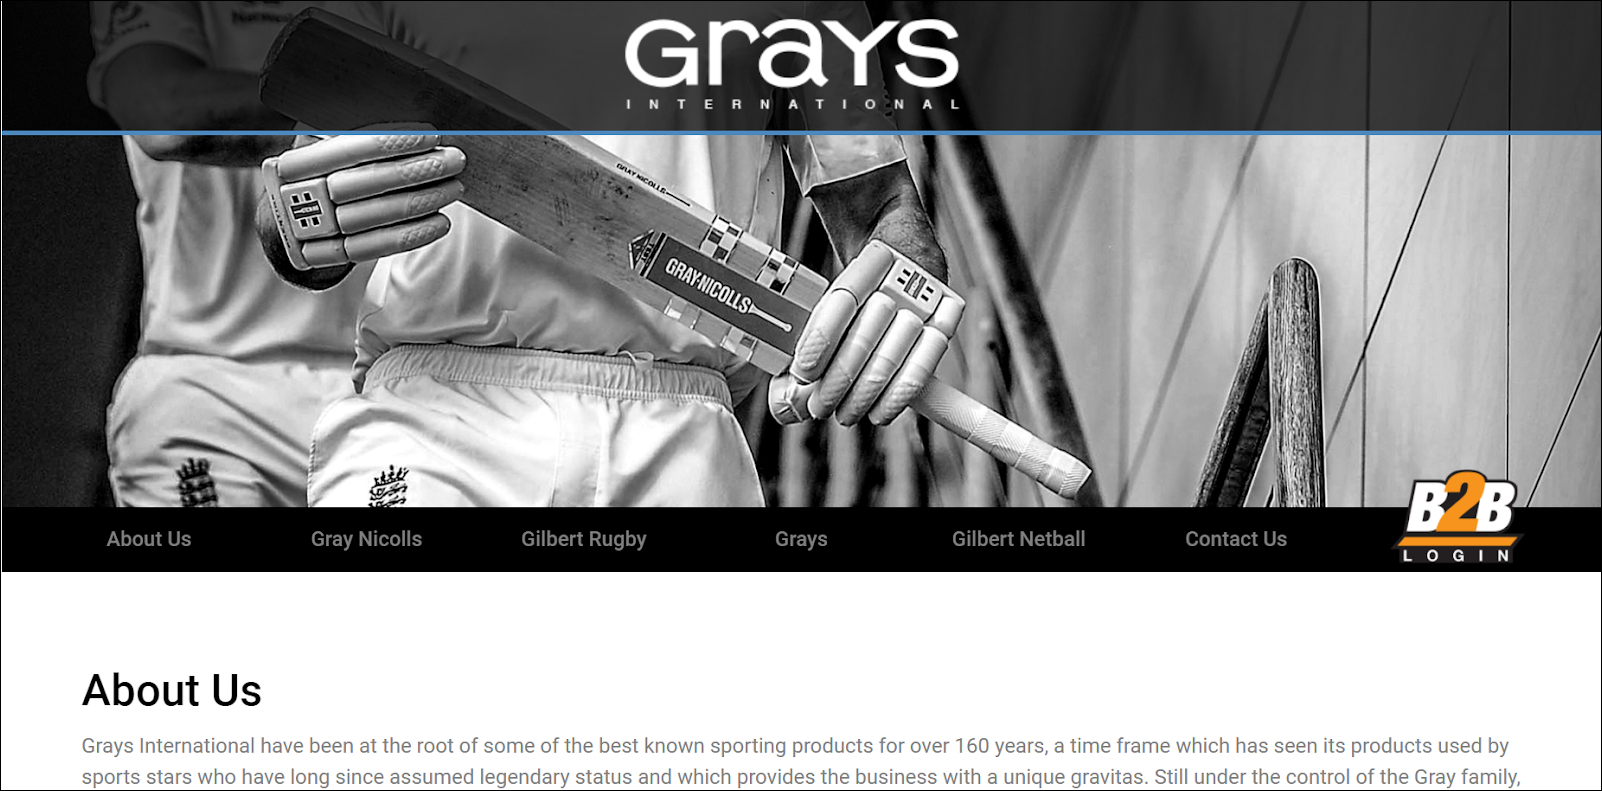 Outgrow Interactive Case Study: How Grays International Generated 19k+ Leads, Engagement and Much More